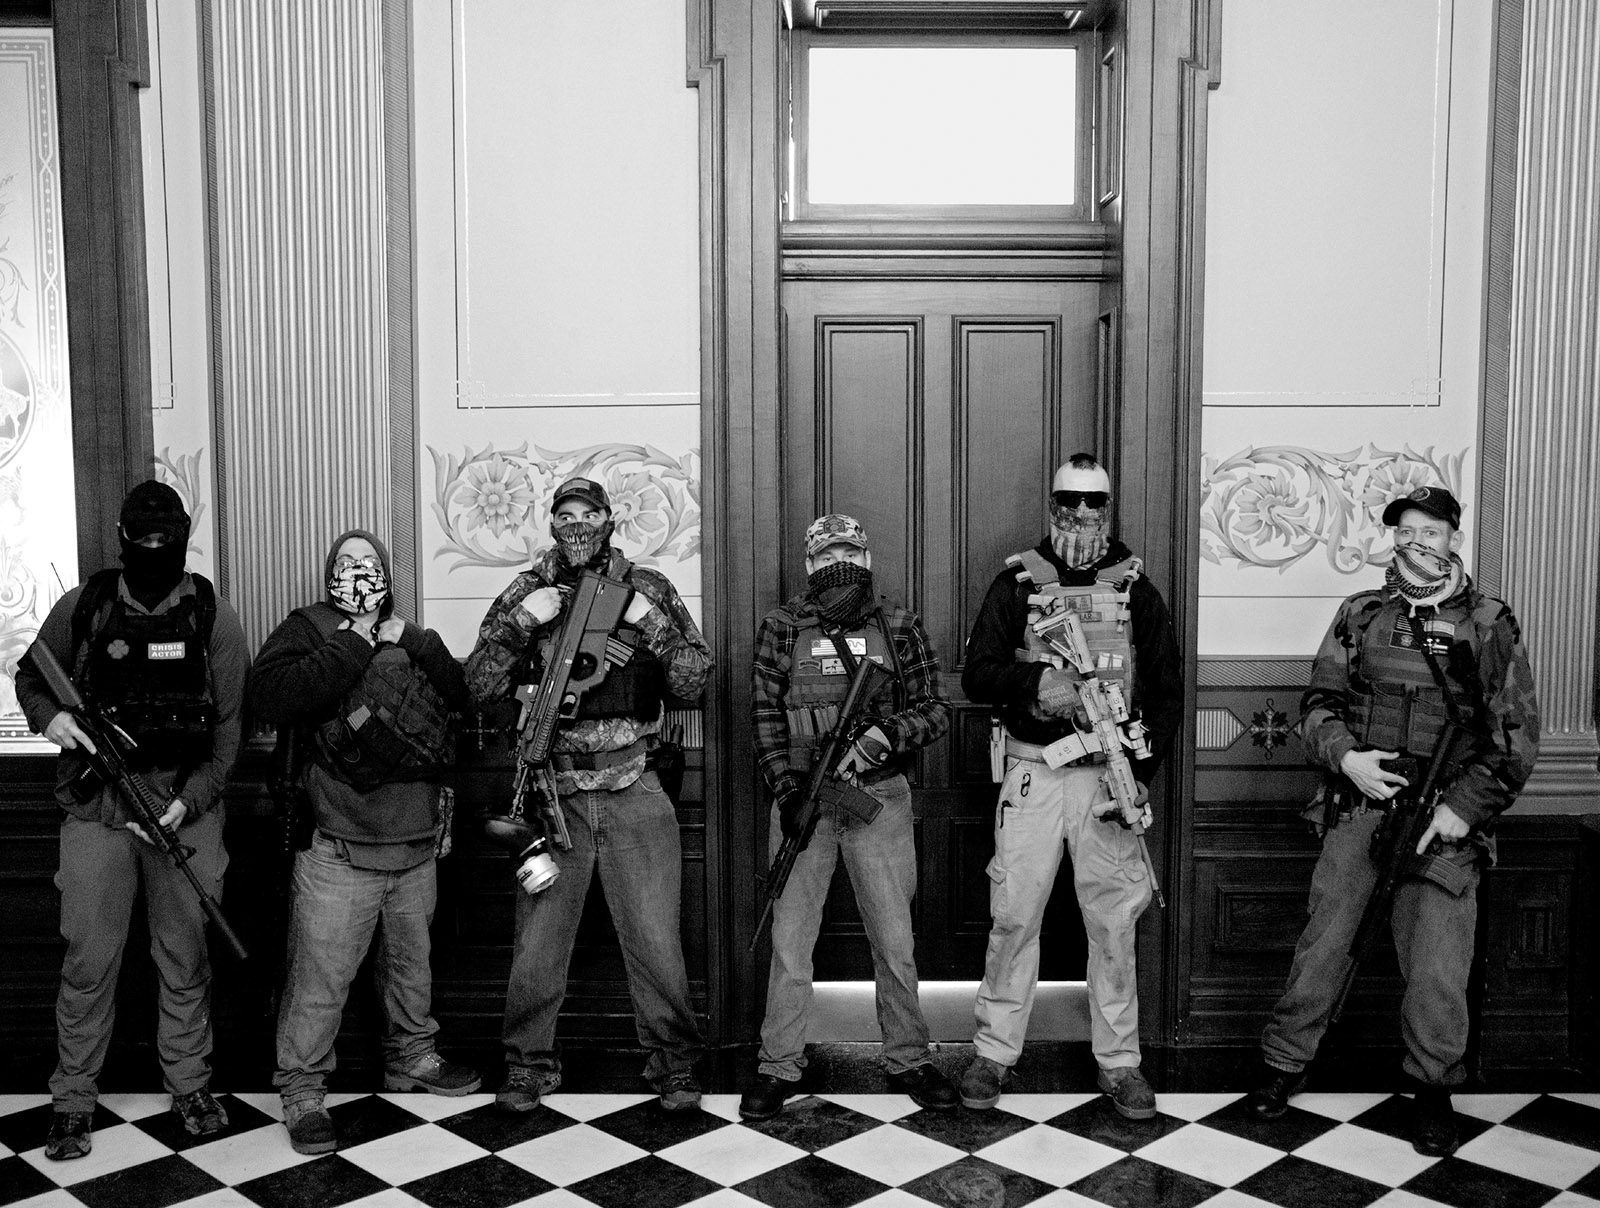 Members of a militia group outside the office of Michigan governor Gretchen Whitmer during a protest against her Covid stay-at-home order